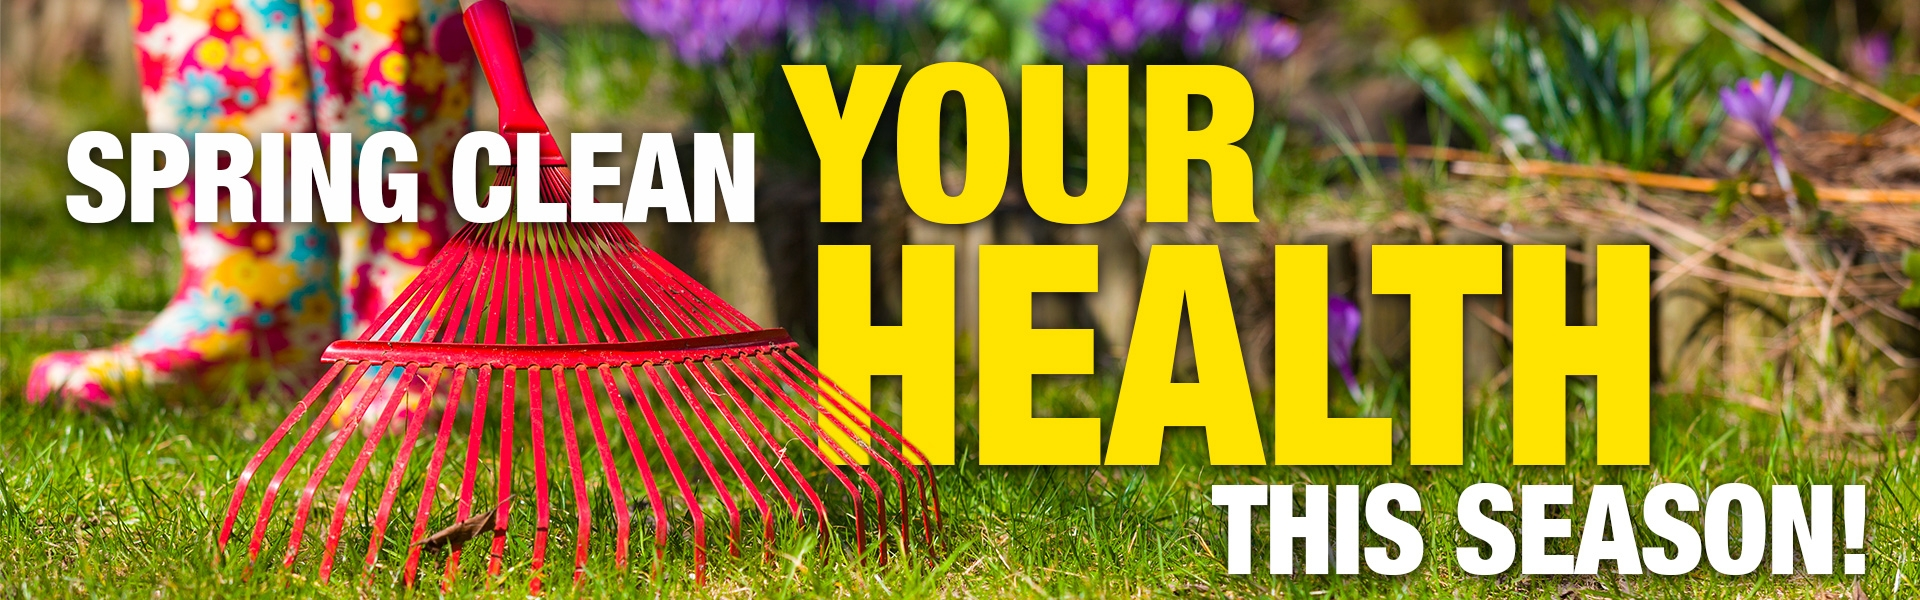 Spring Clean Your Health This Season!